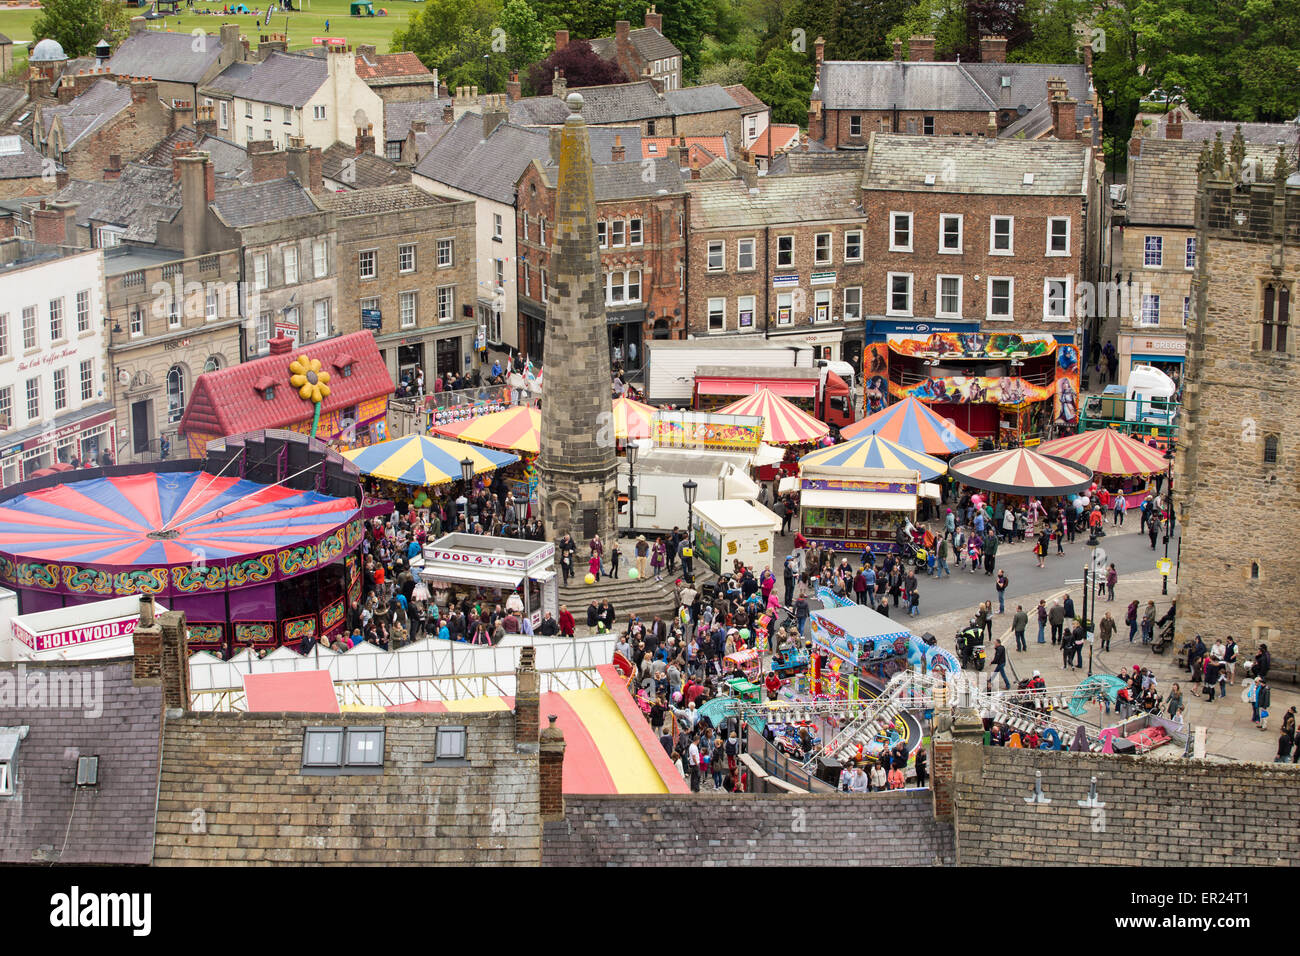 Richmond, North Yorkshire, UK. 25th May, 2015. A Funfair in the market place in the lovely market town of Richmond Stock Photo